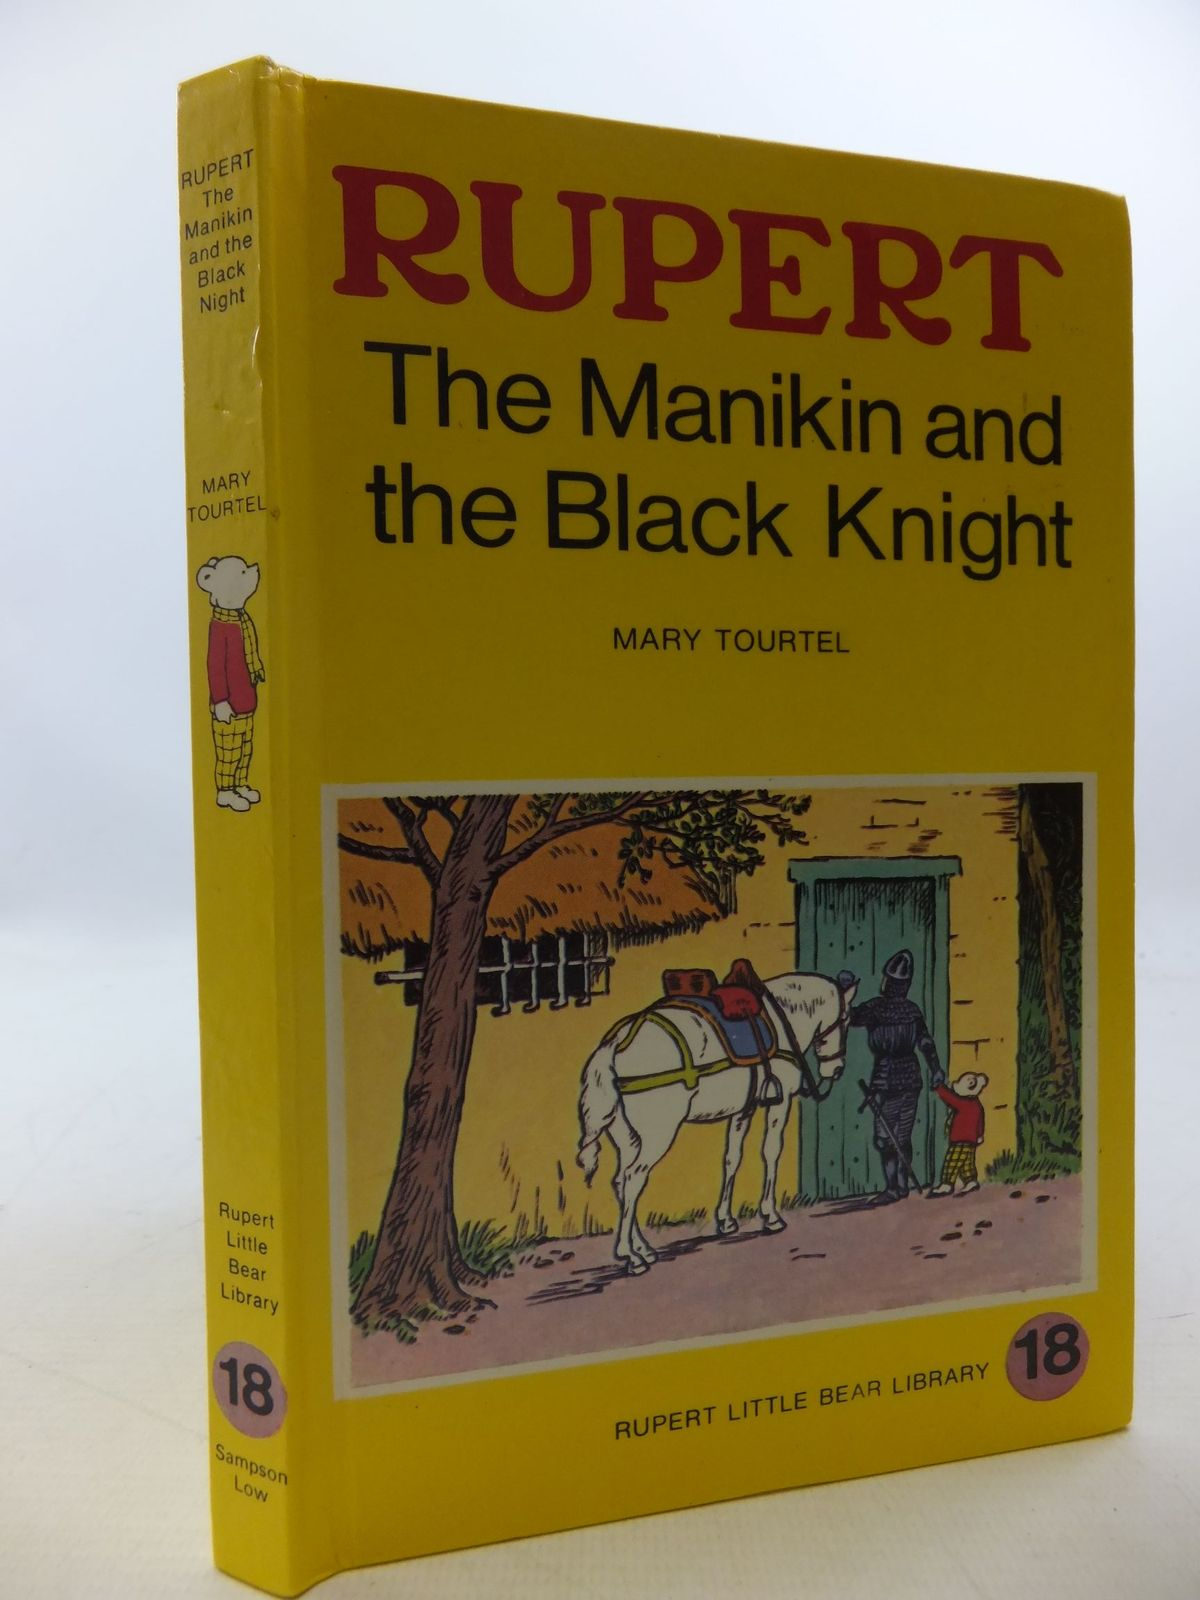 Photo of RUPERT, THE MANIKIN AND THE BLACK KNIGHT - RUPERT LITTLE BEAR LIBRARY No. 18 (WOOLWORTH) written by Tourtel, Mary illustrated by Tourtel, Mary published by Sampson Low, Marston & Co. Ltd. (STOCK CODE: 2112754)  for sale by Stella & Rose's Books